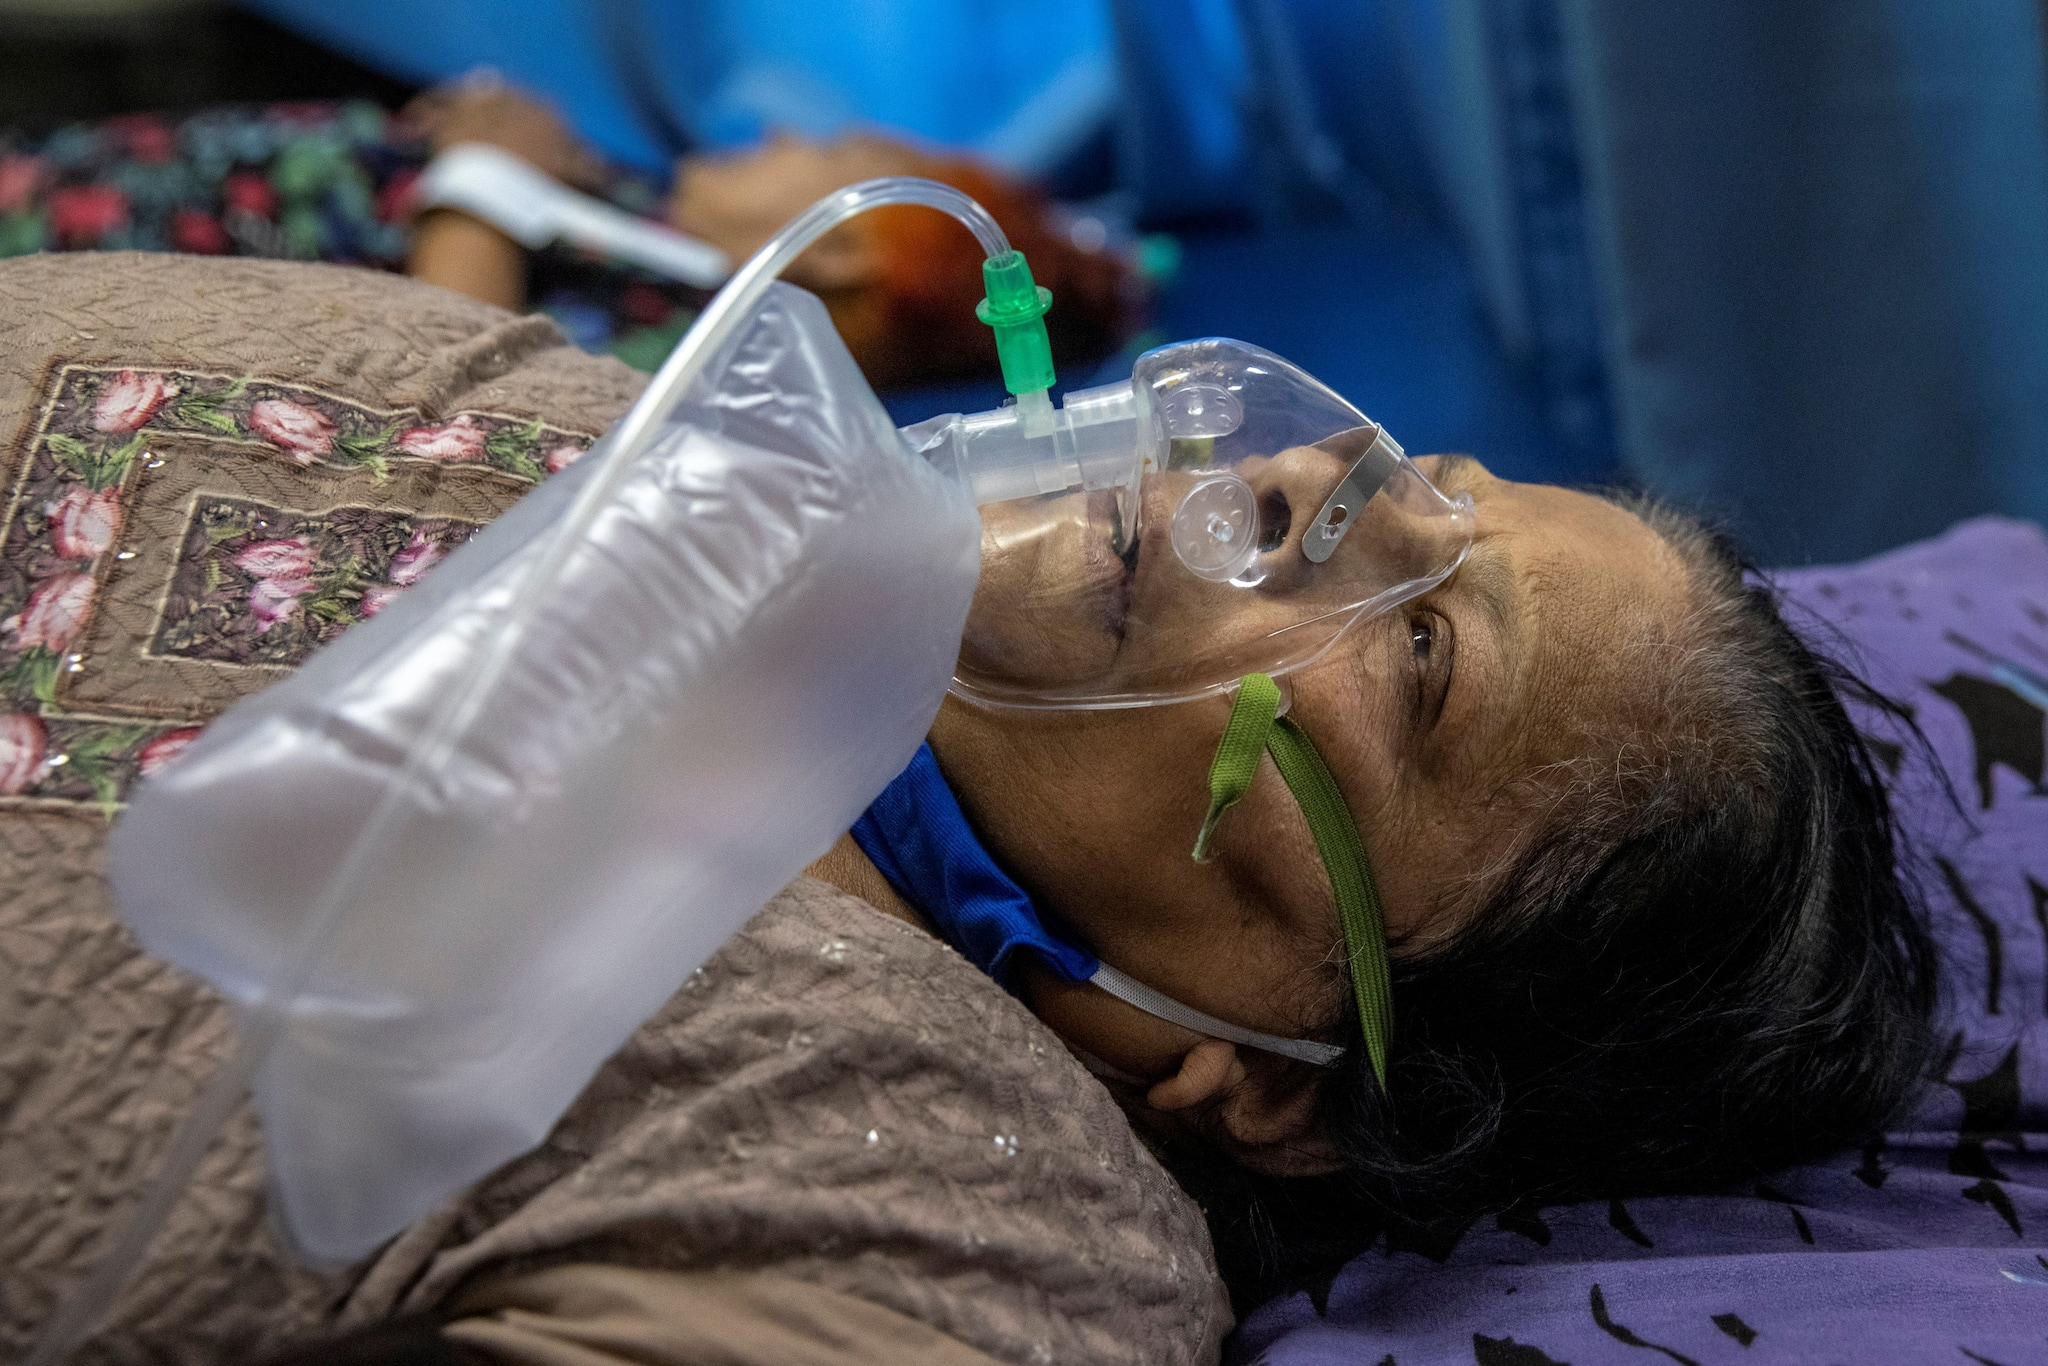 In Delhi, hospitals run out of supplies, ask patients' kin to get oxygen, Remdesivir